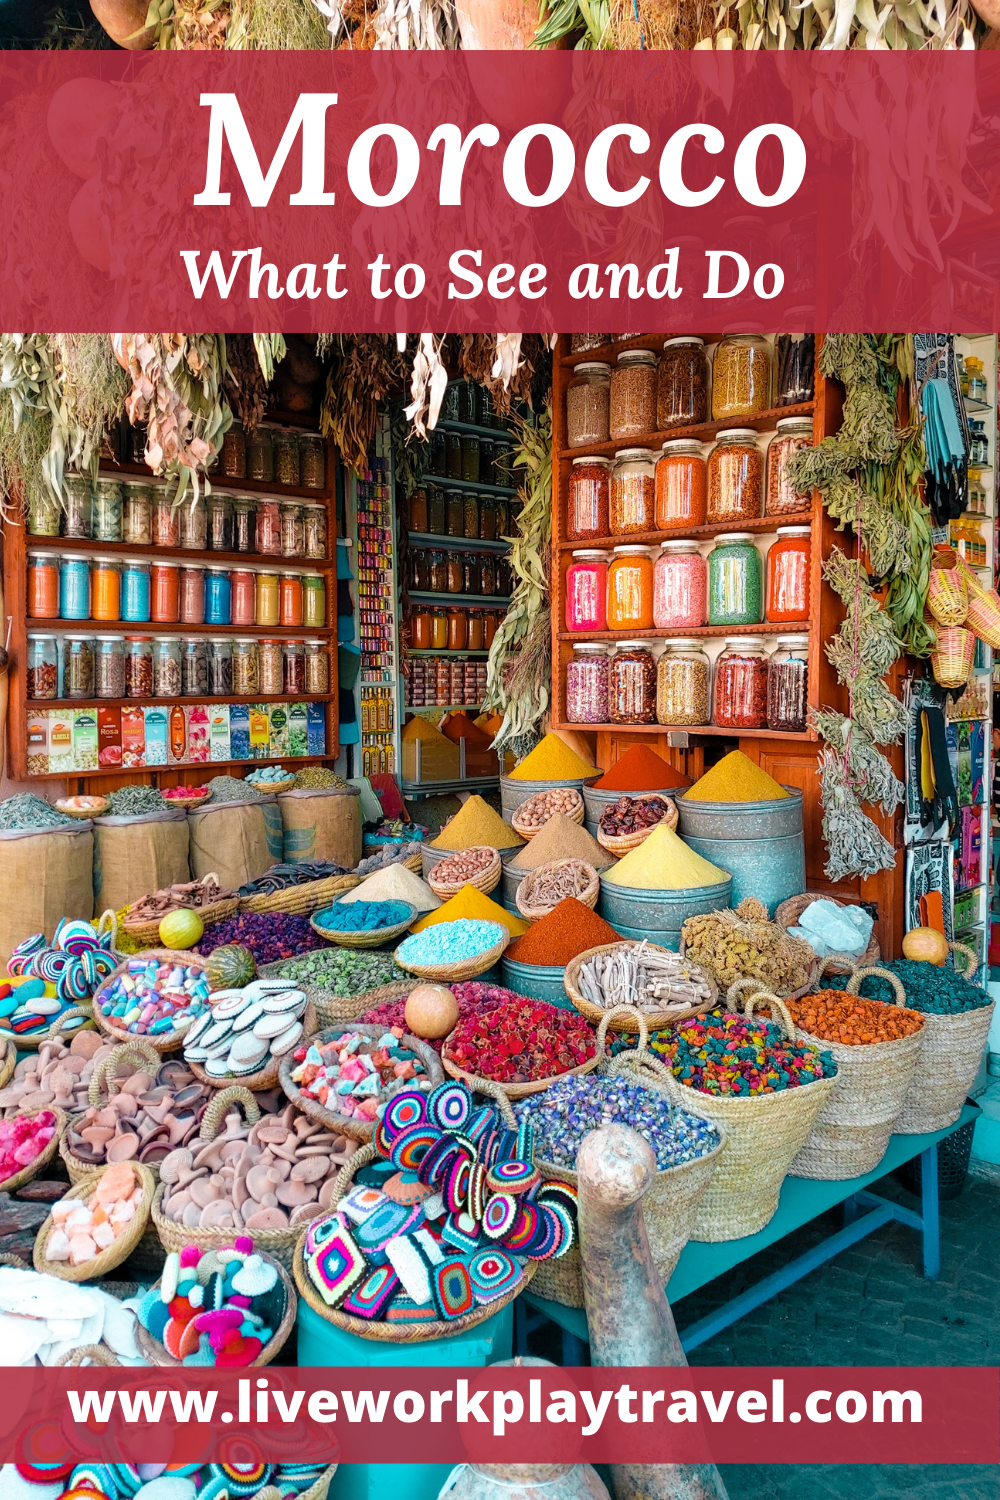 Morocco Has Many Markets With Colourful Spices.